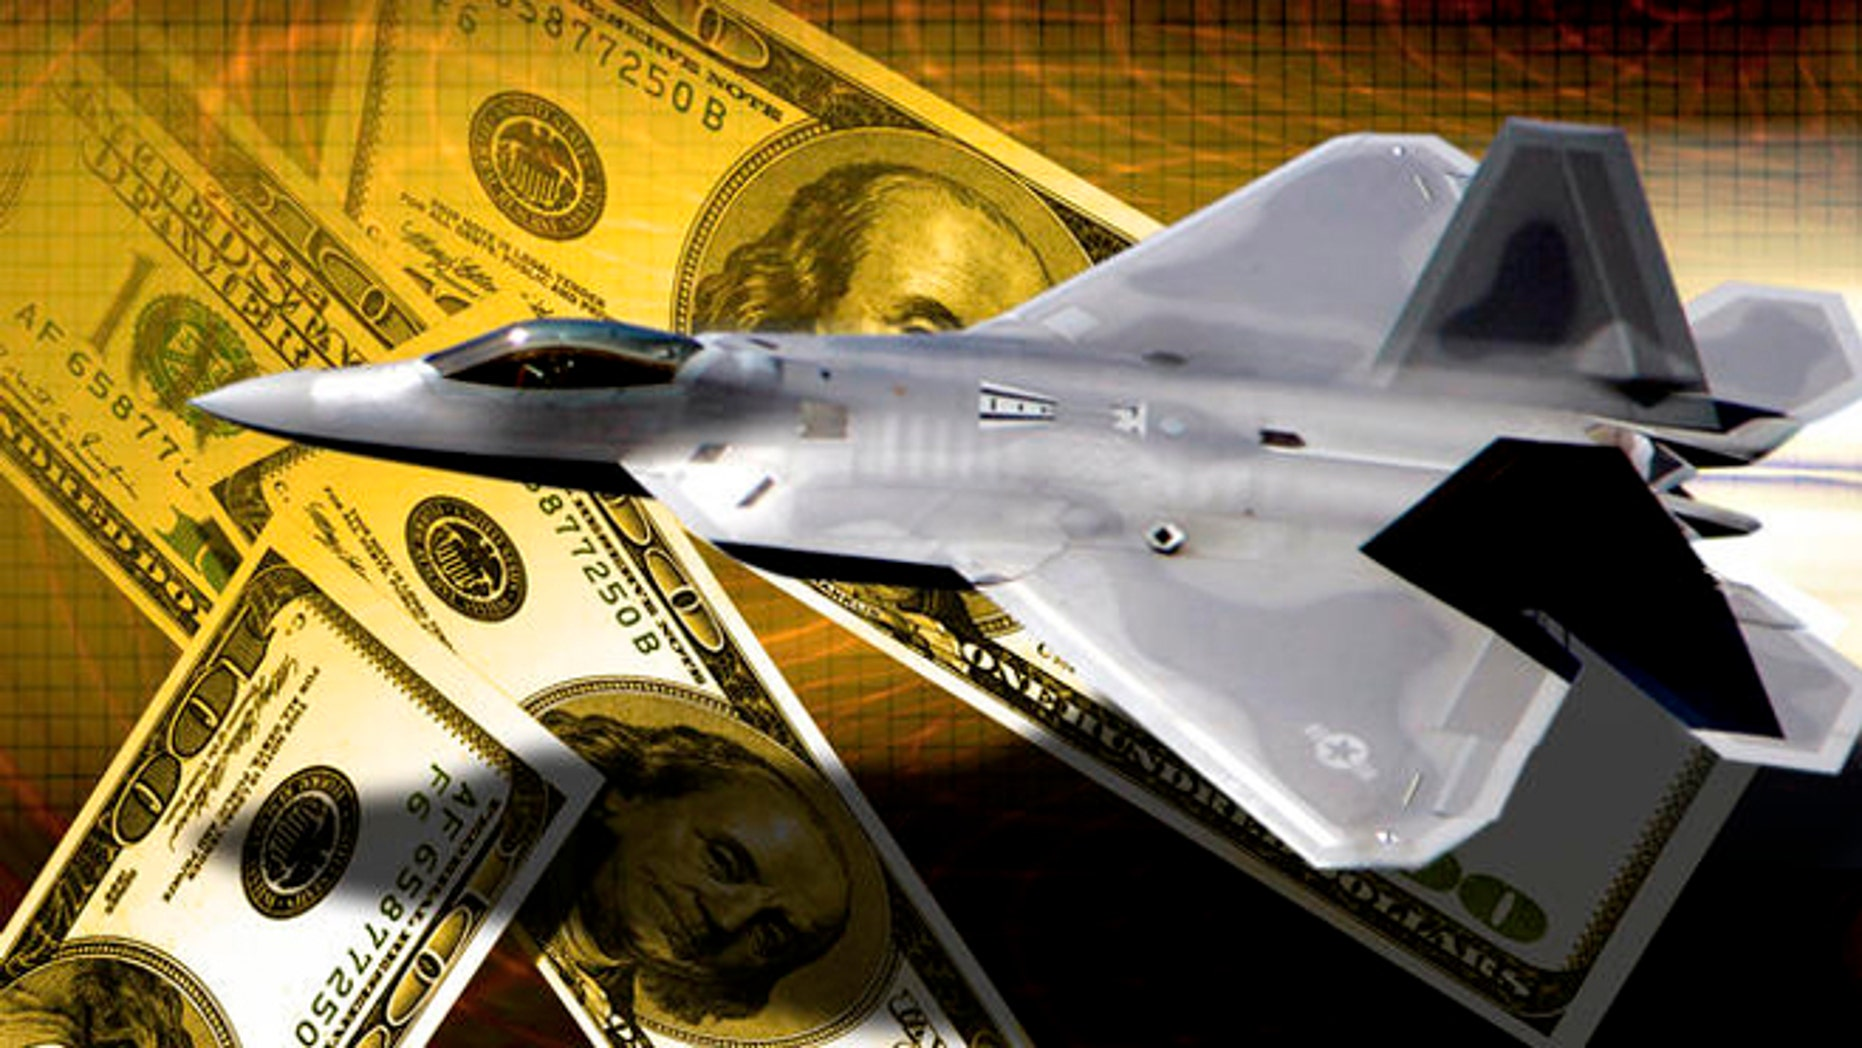 Shown here is a graphic of the Lockheed Martin F-22 Raptor.